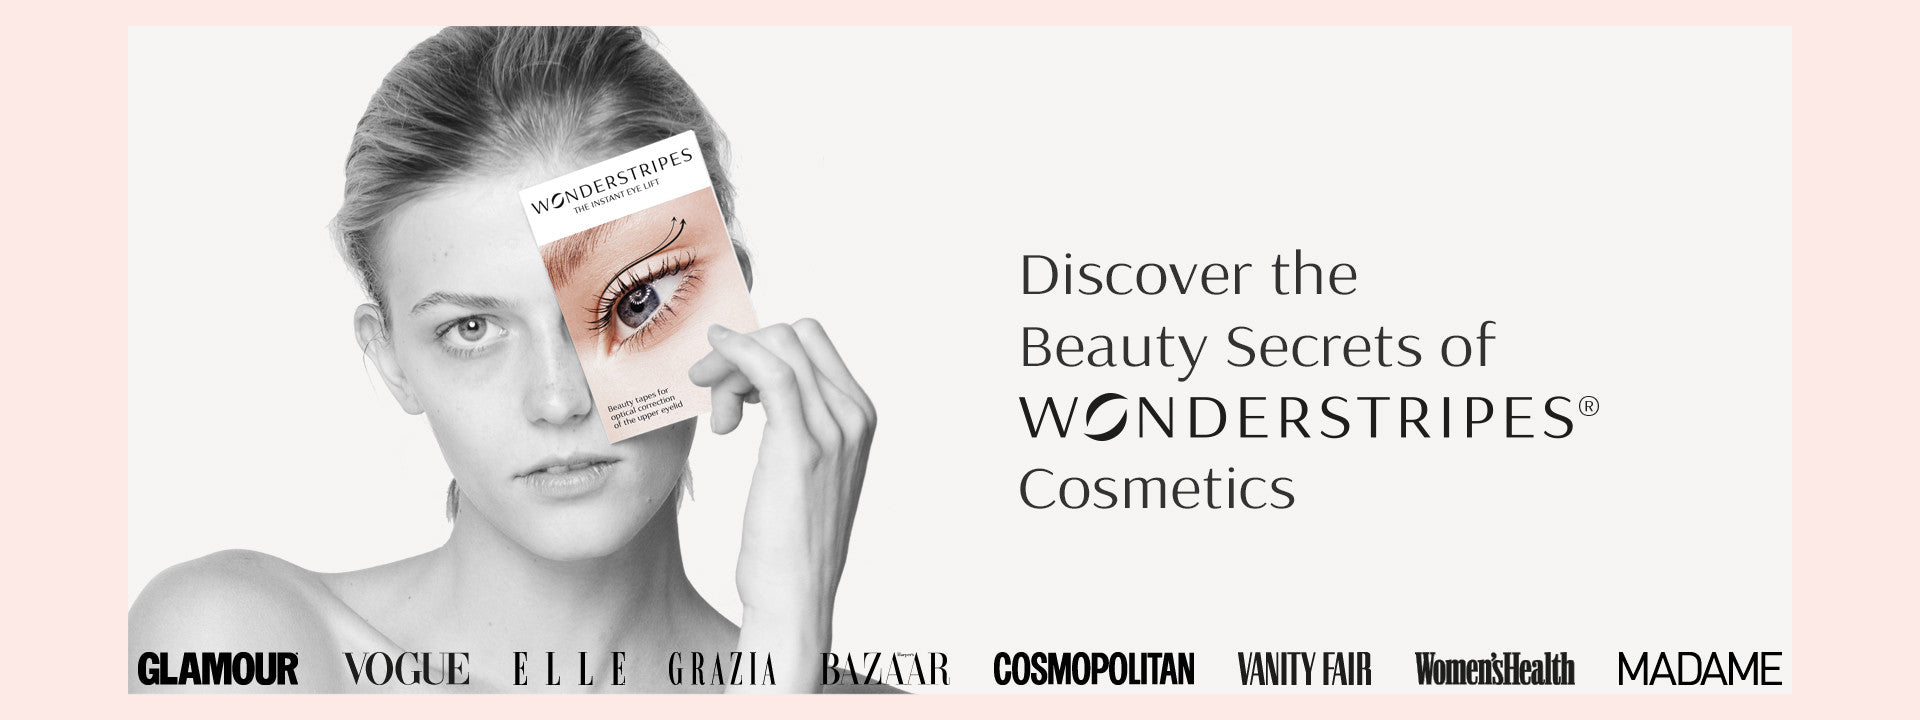 Discover the Beauty Secrets by WONDERSTRIPES Cosmetics